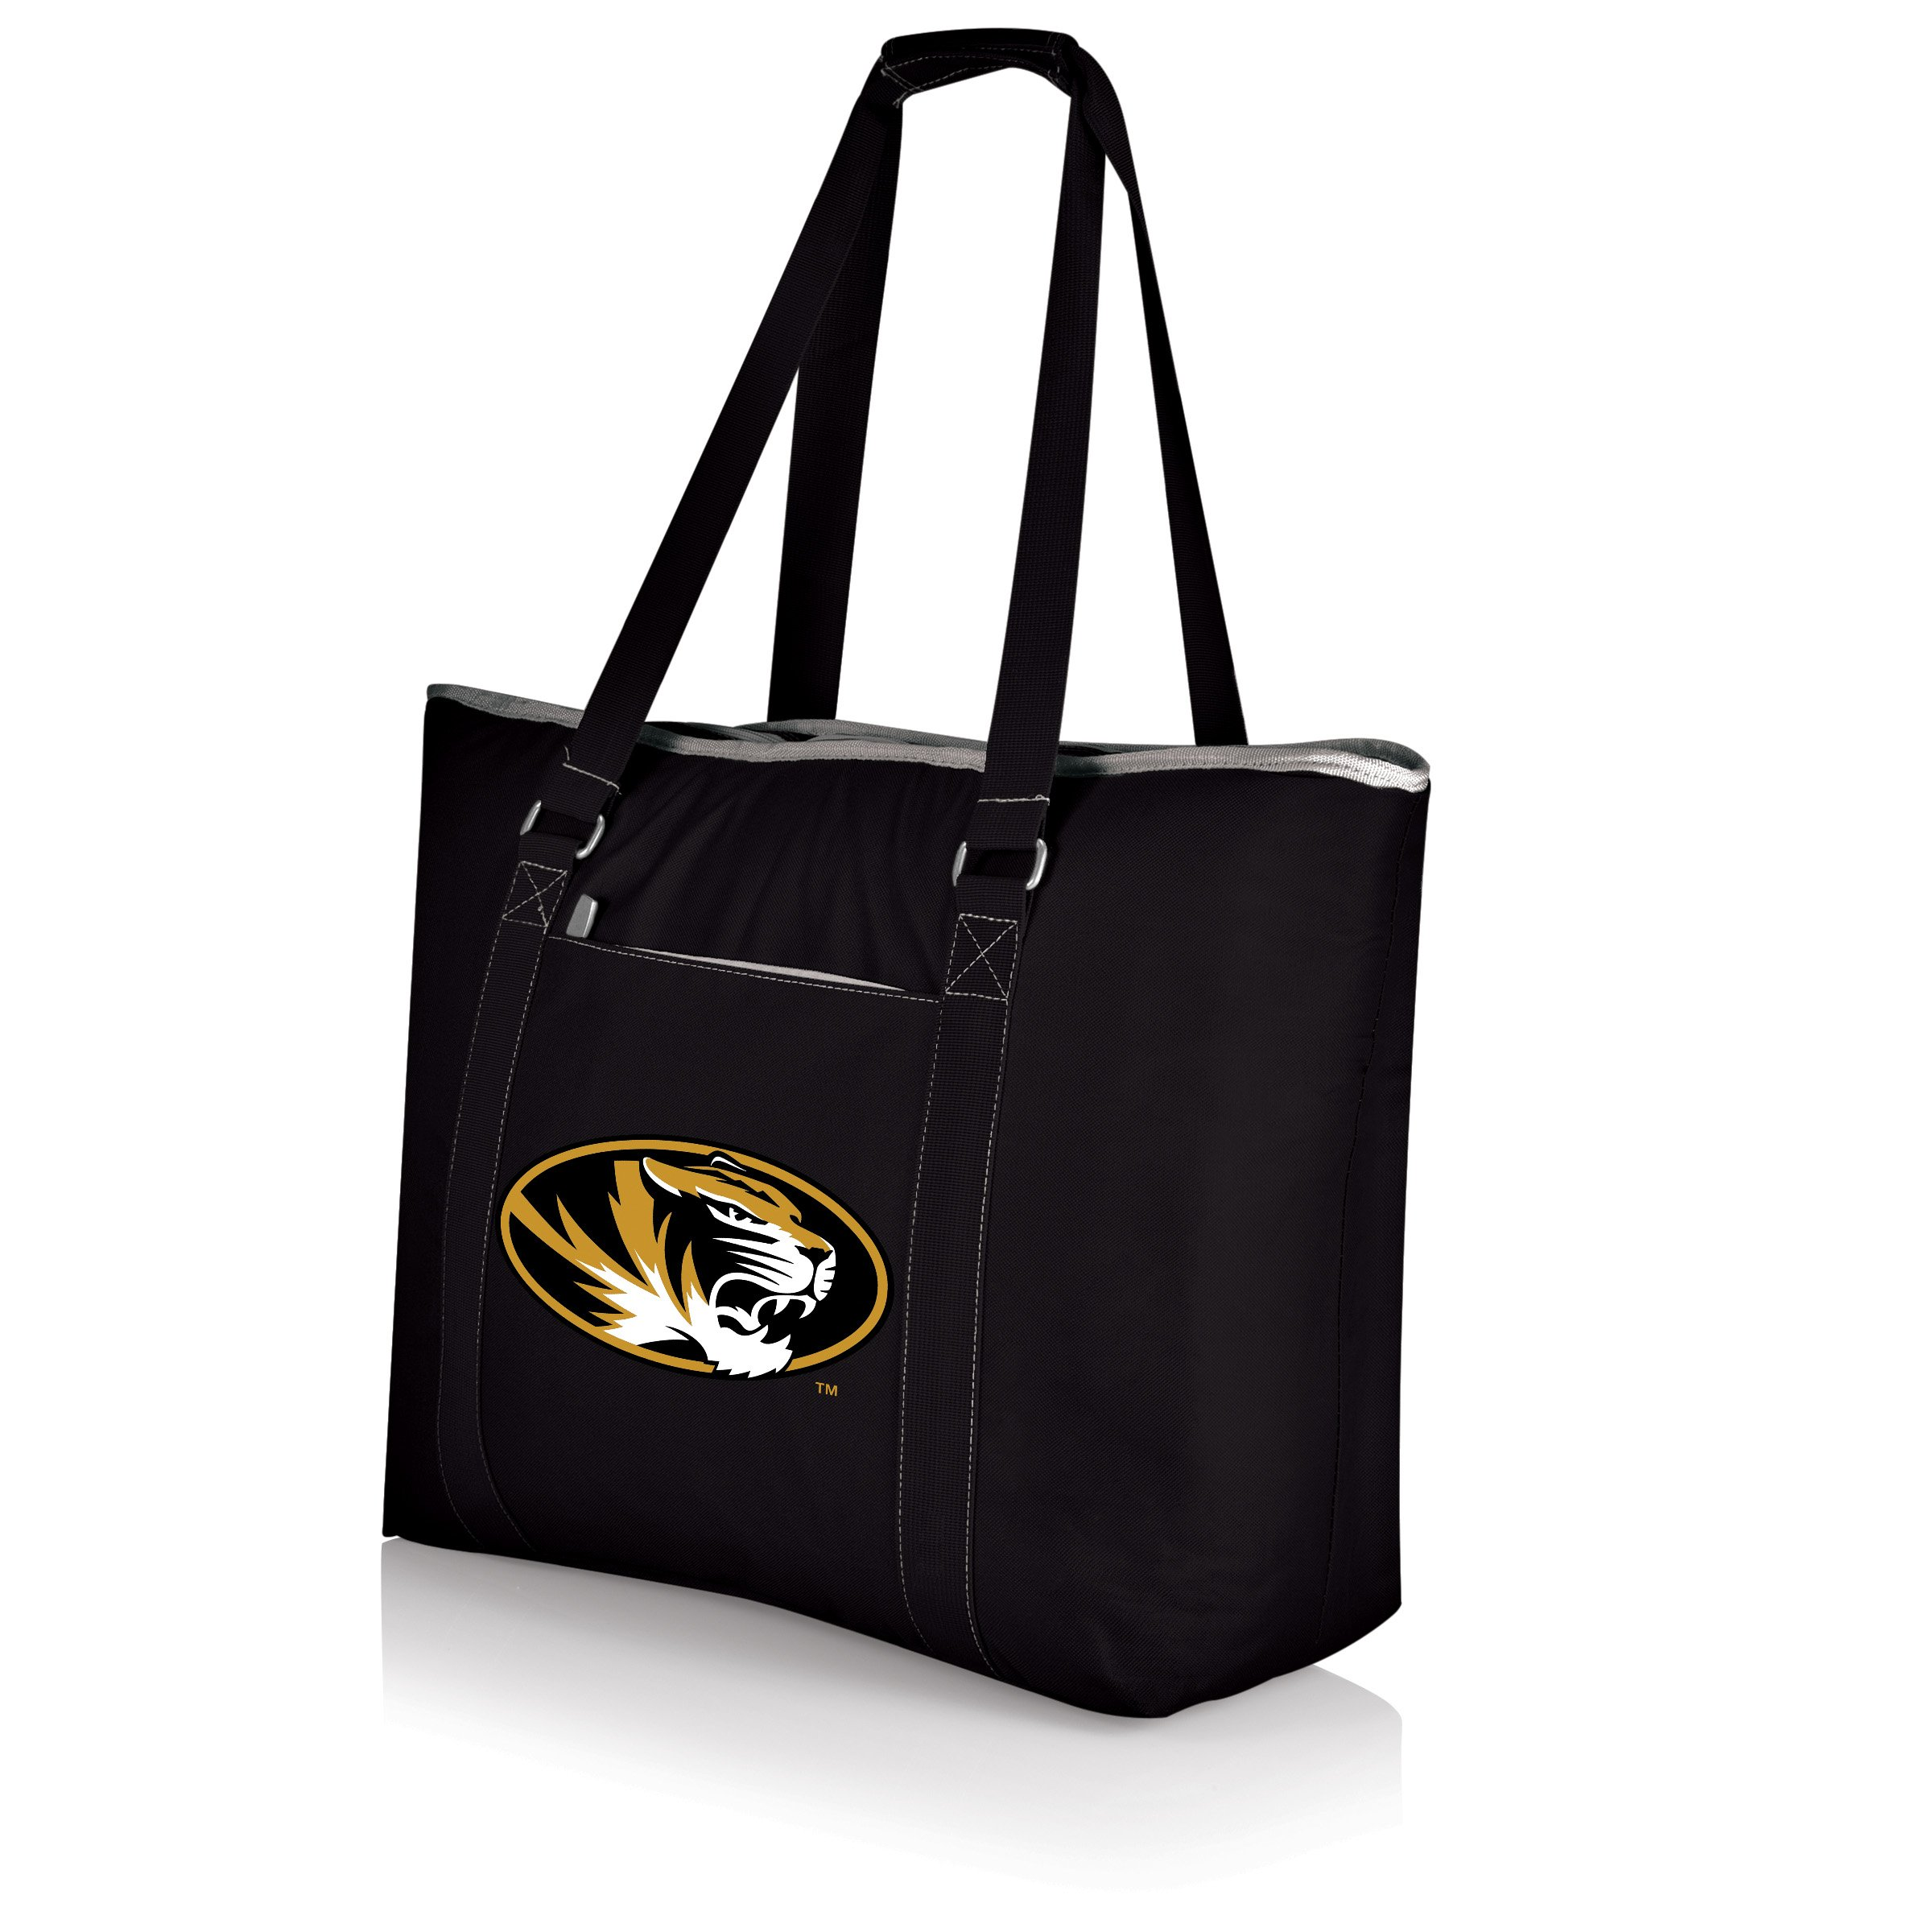 NCAA Missouri Tigers Tahoe Extra Large Insulated Cooler Tote